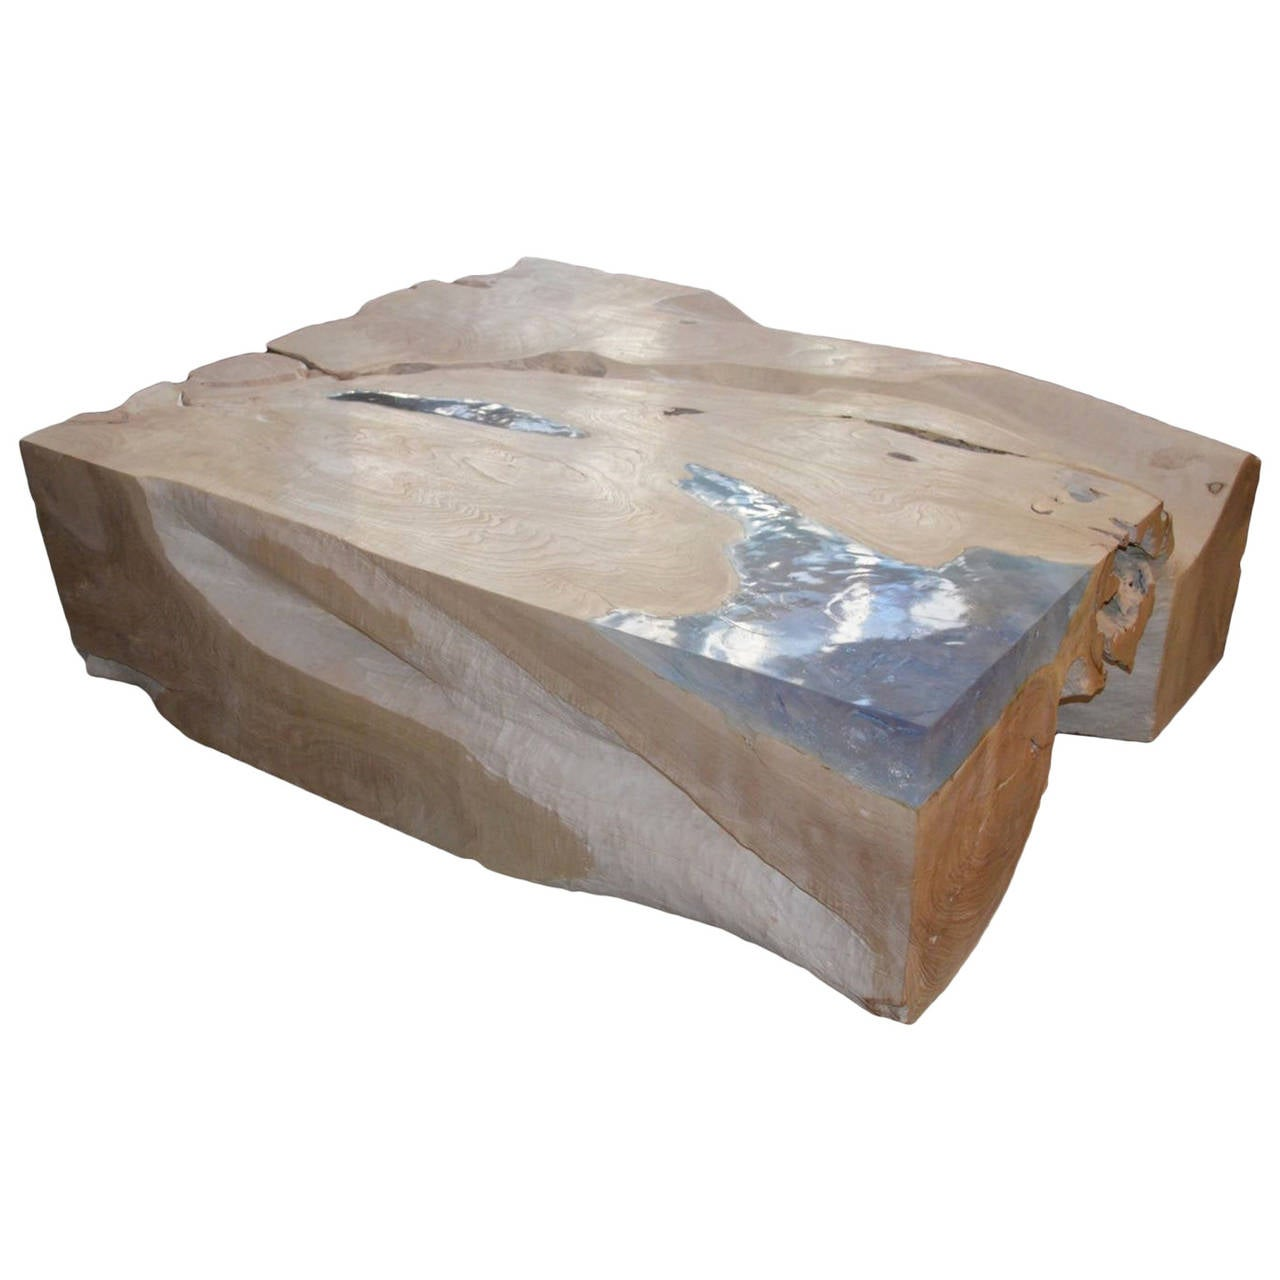 Vidaxl Coffee Table Teak Resin: Andrianna Shamaris St. Barts Bleached Teak Wood And Aqua